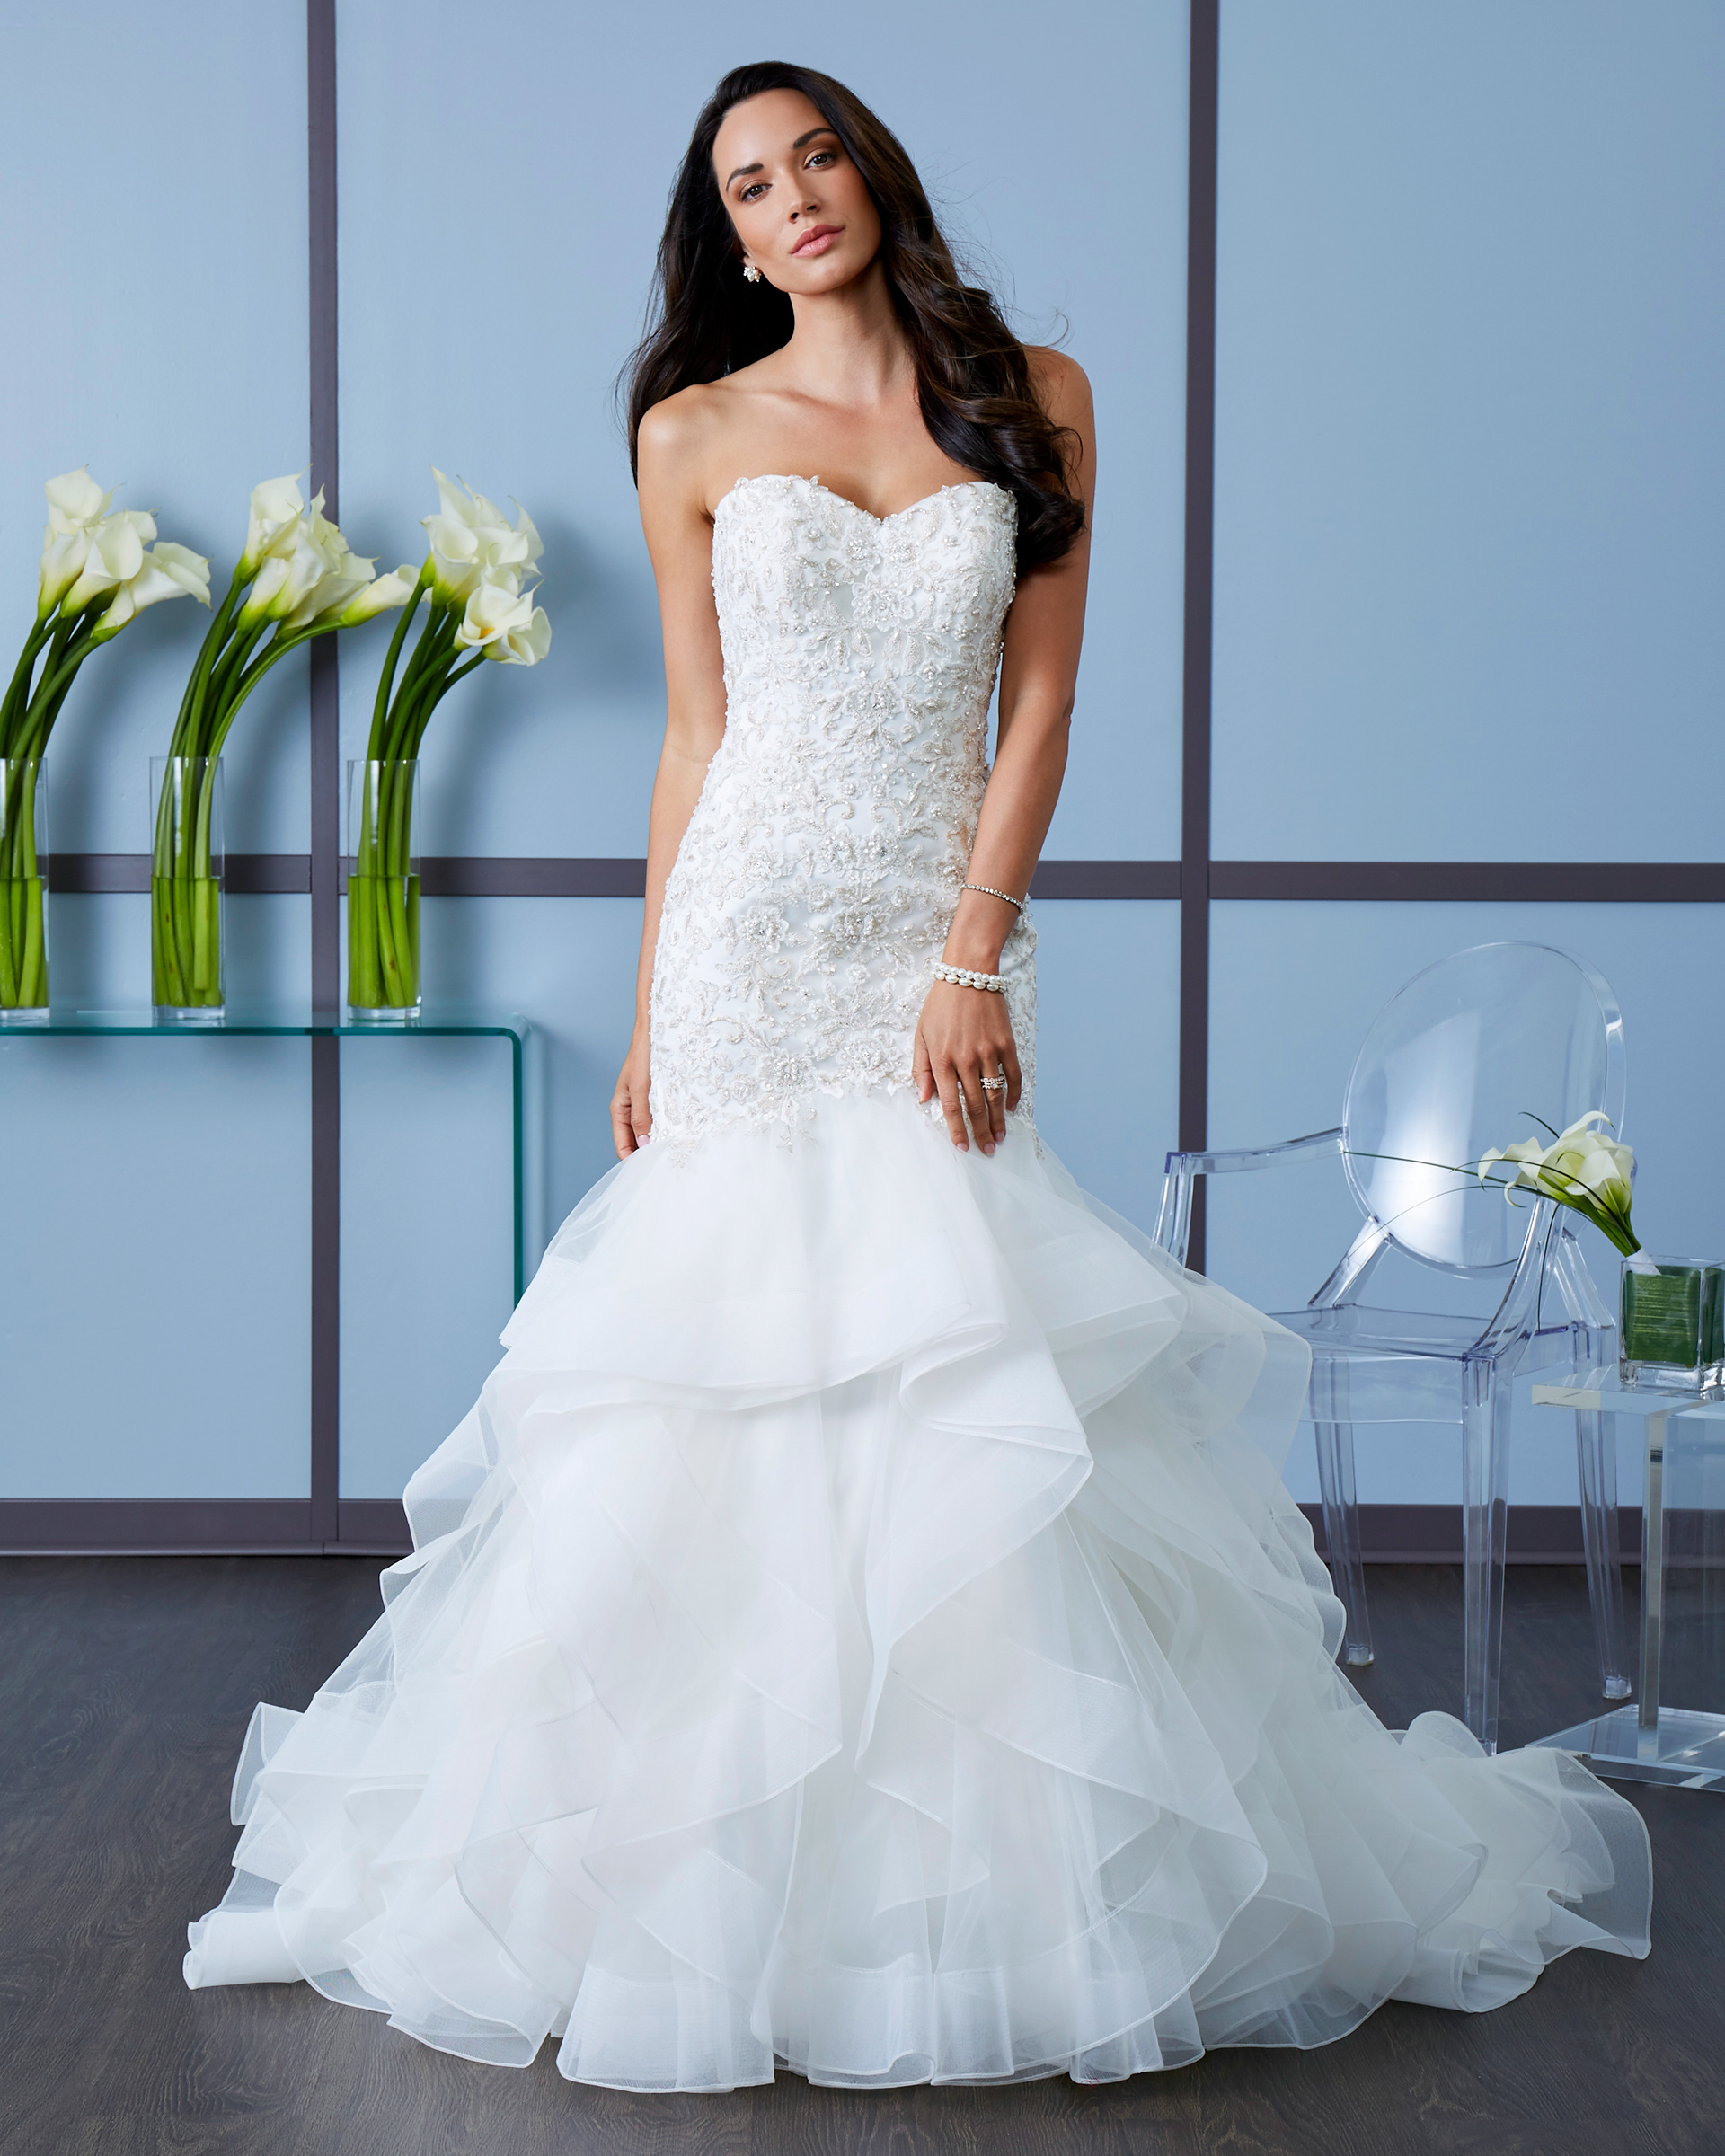 Excellent Wedding Dress Shops Maidstone Contemporary - Wedding Ideas ...